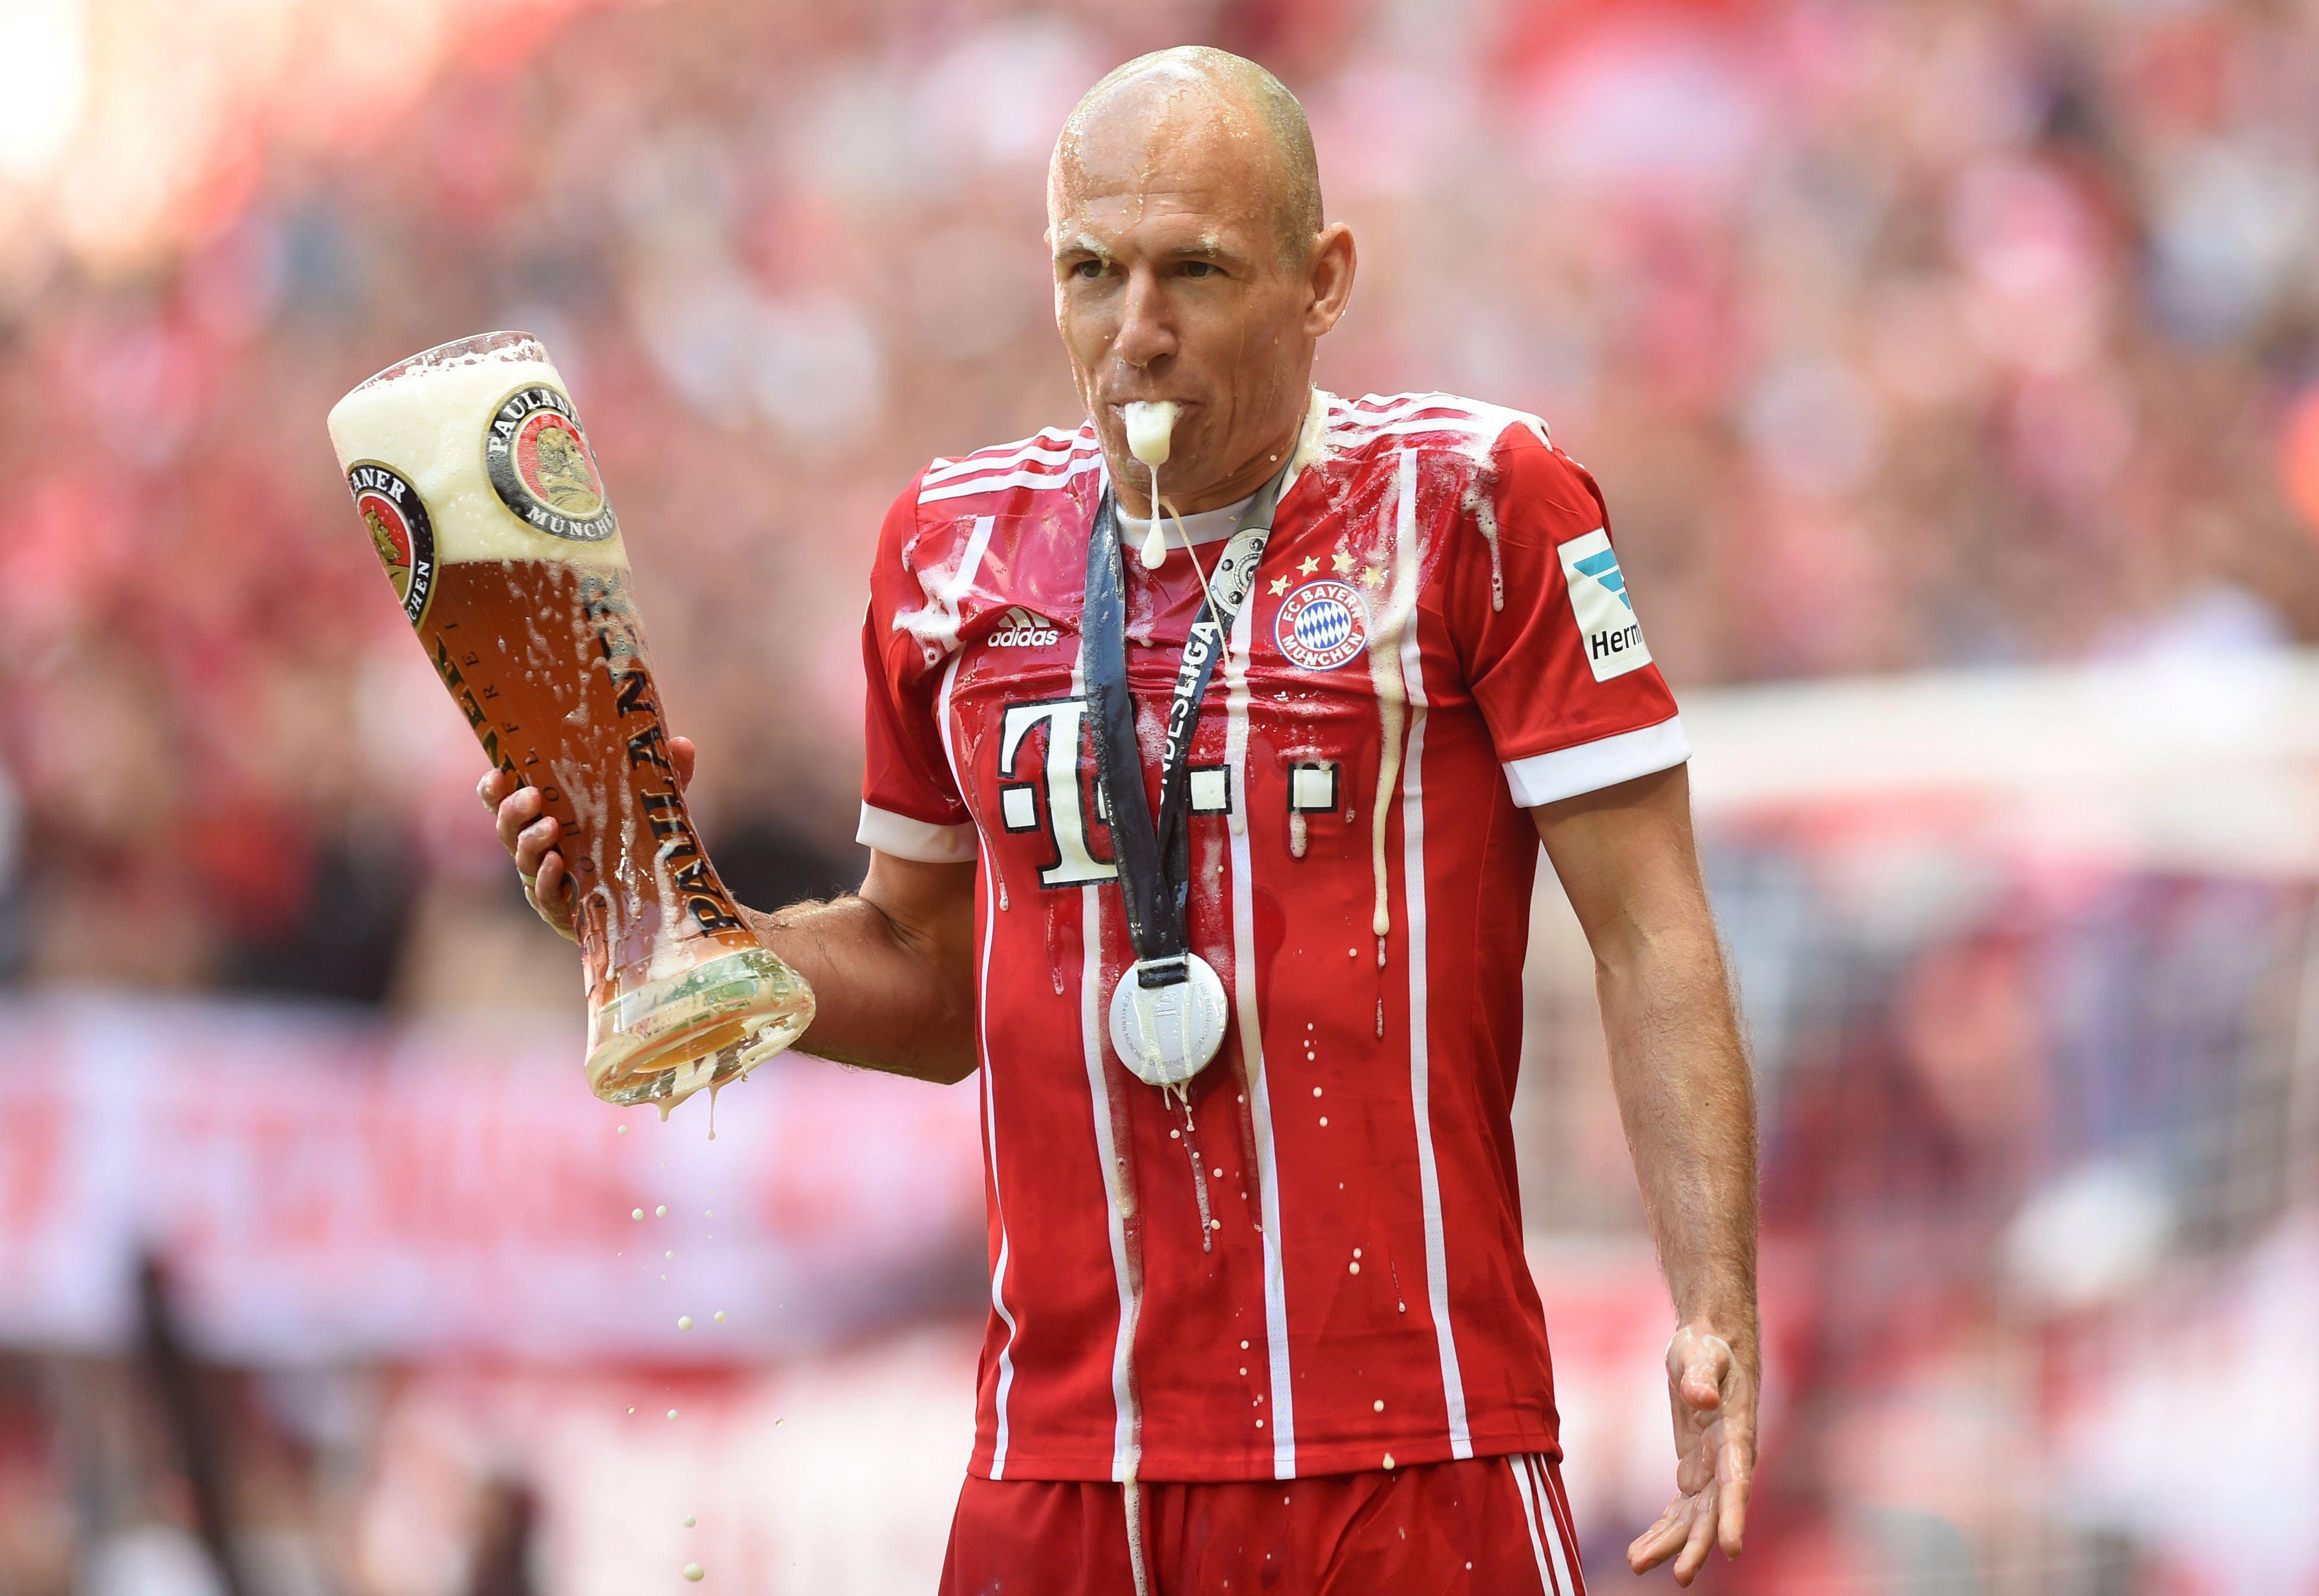 Arjen Robben has been called a role model by Liverpool boss, Jurgen Klopp ahead of the Audi Cup clash